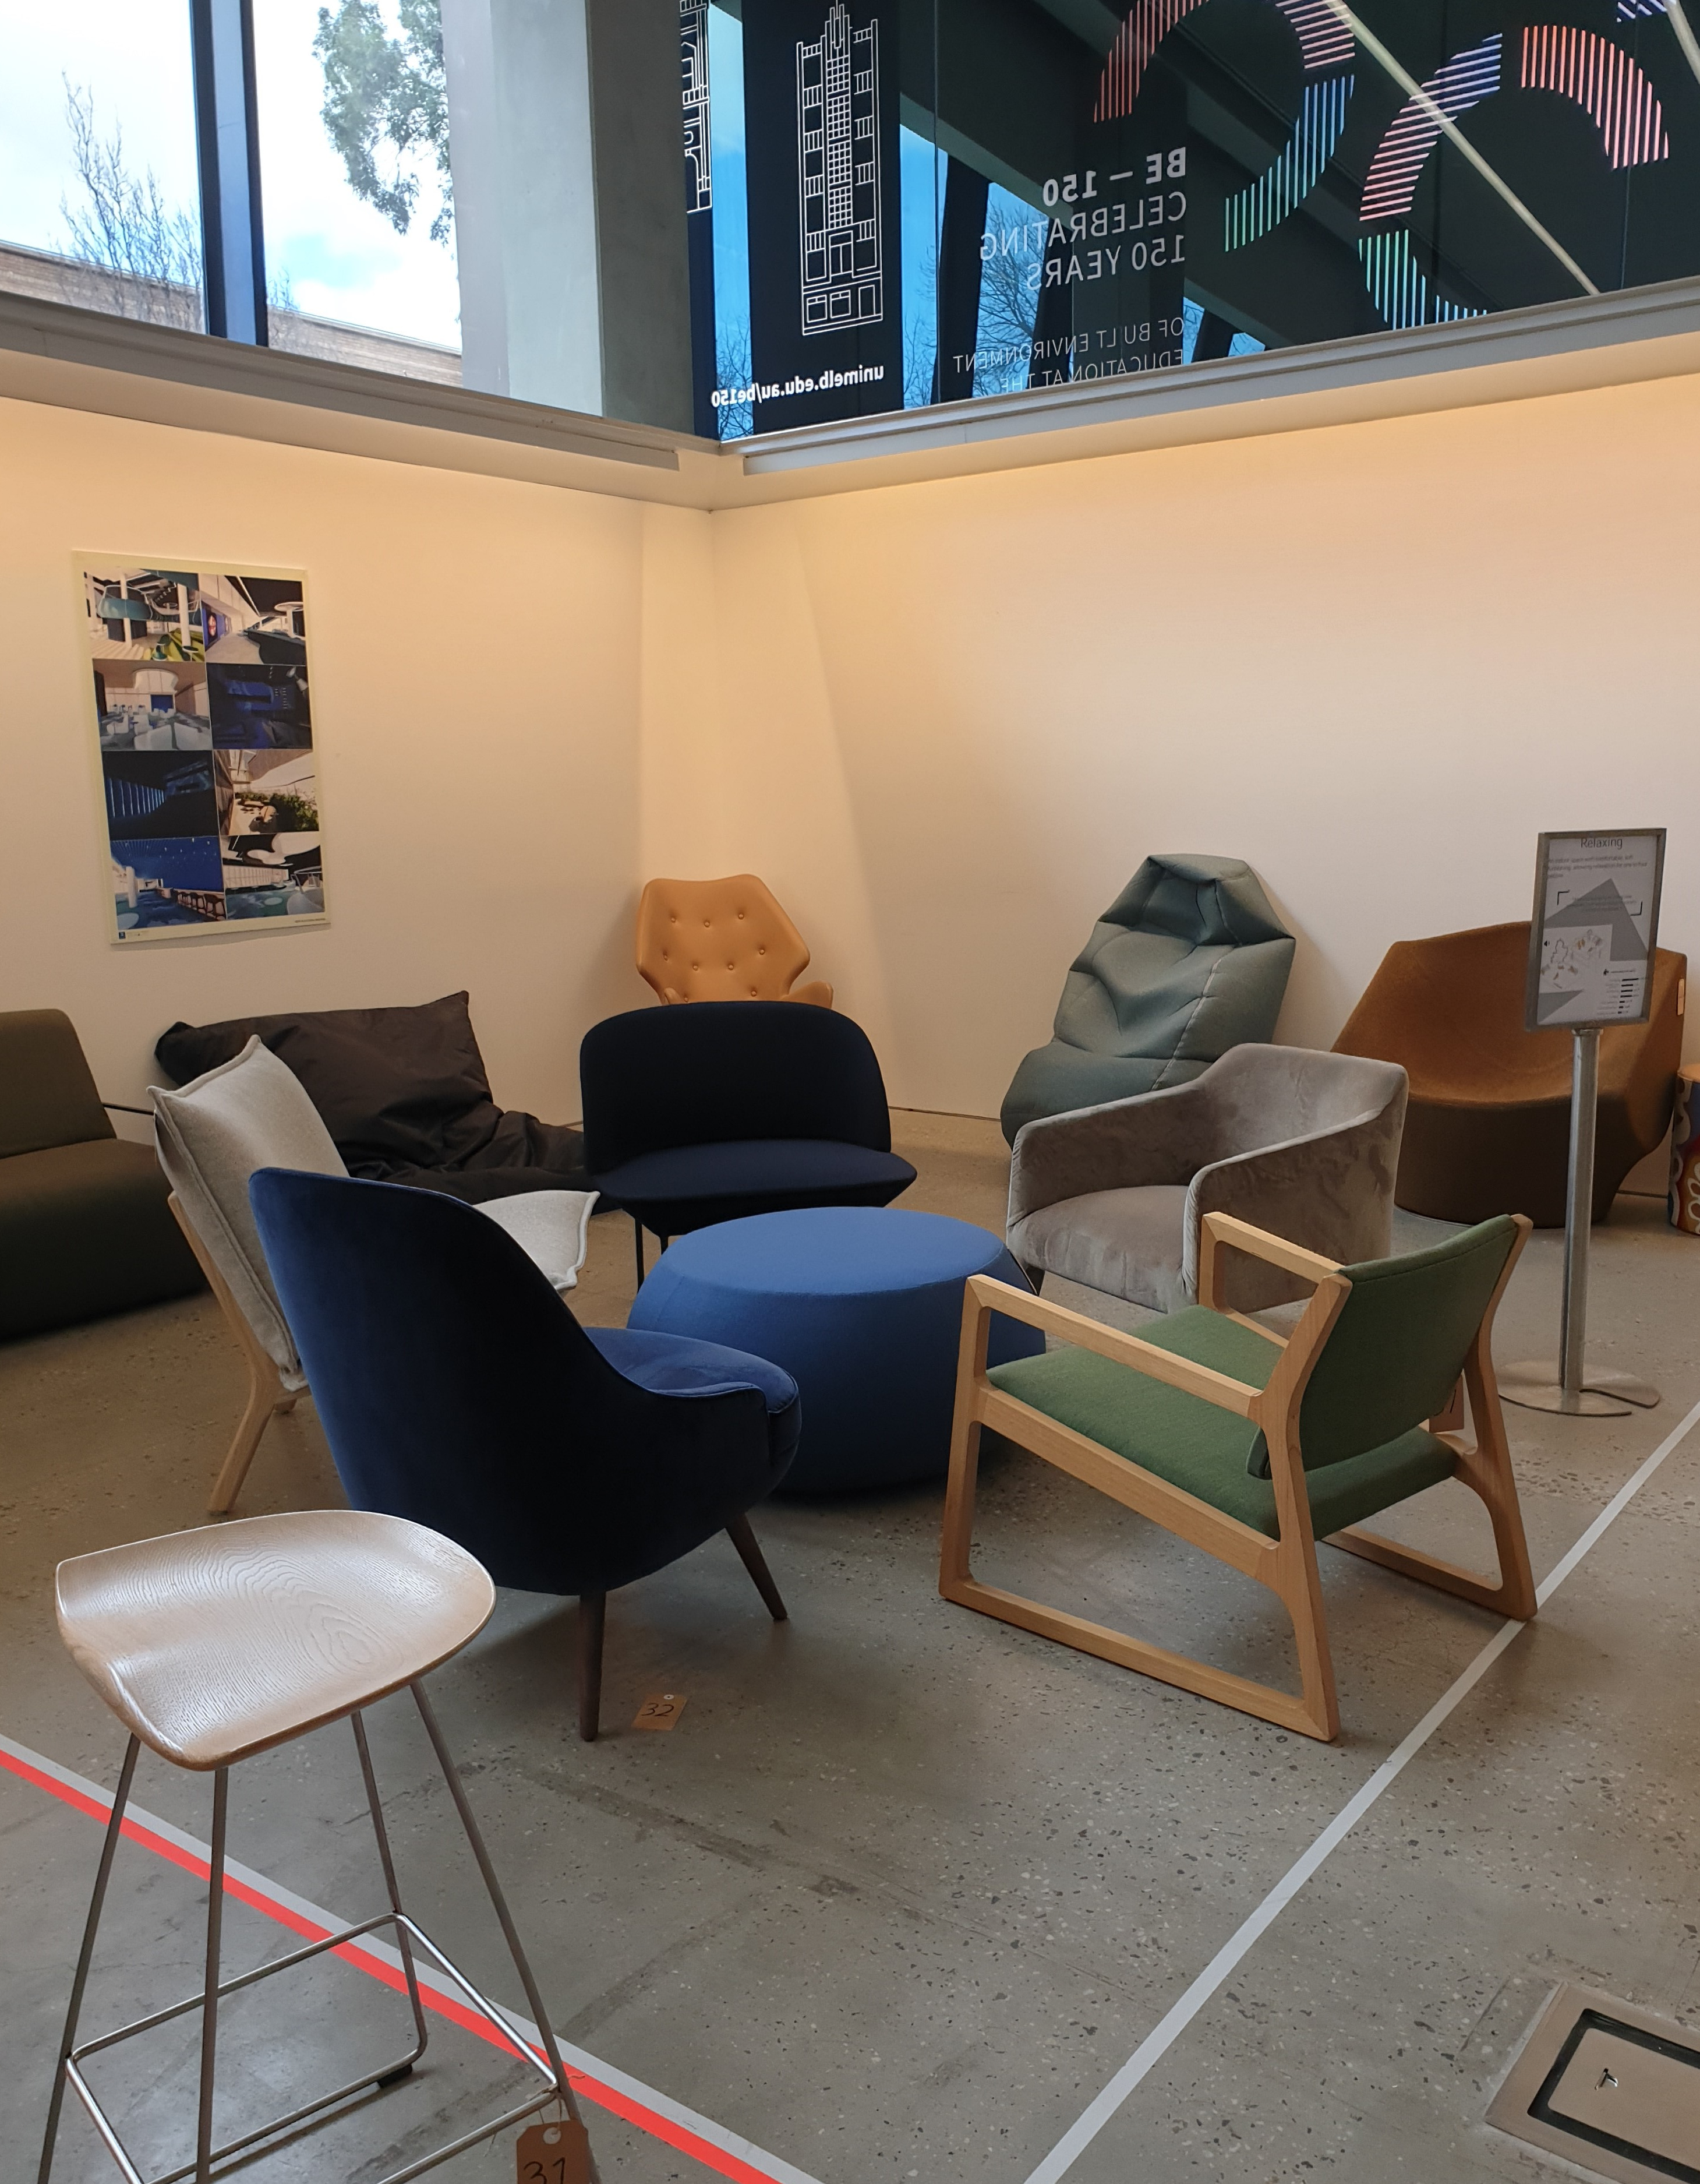 A series of comfortable chairs, set up in a gallery space. The sun is beaming down on a navy blue, velvet chair